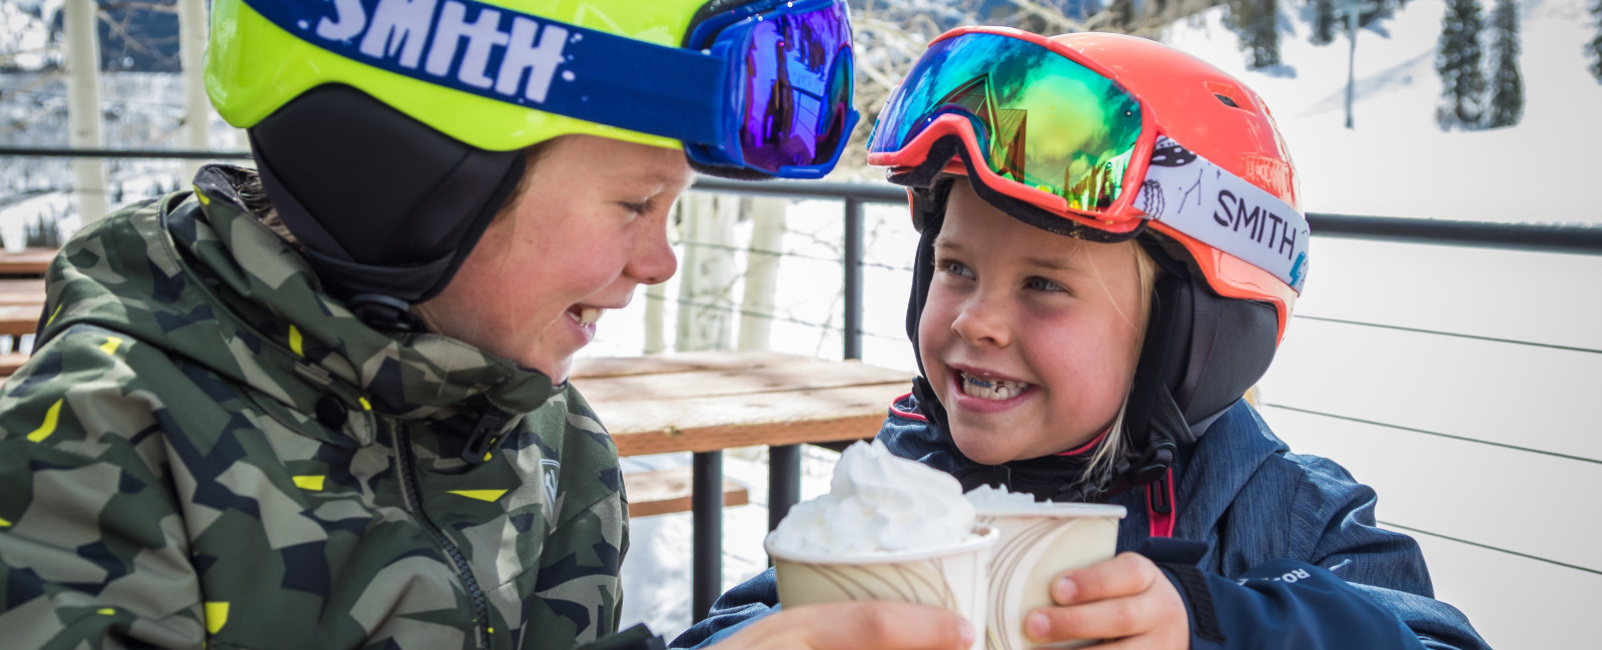 Finding the Best Ski Deals for Kids